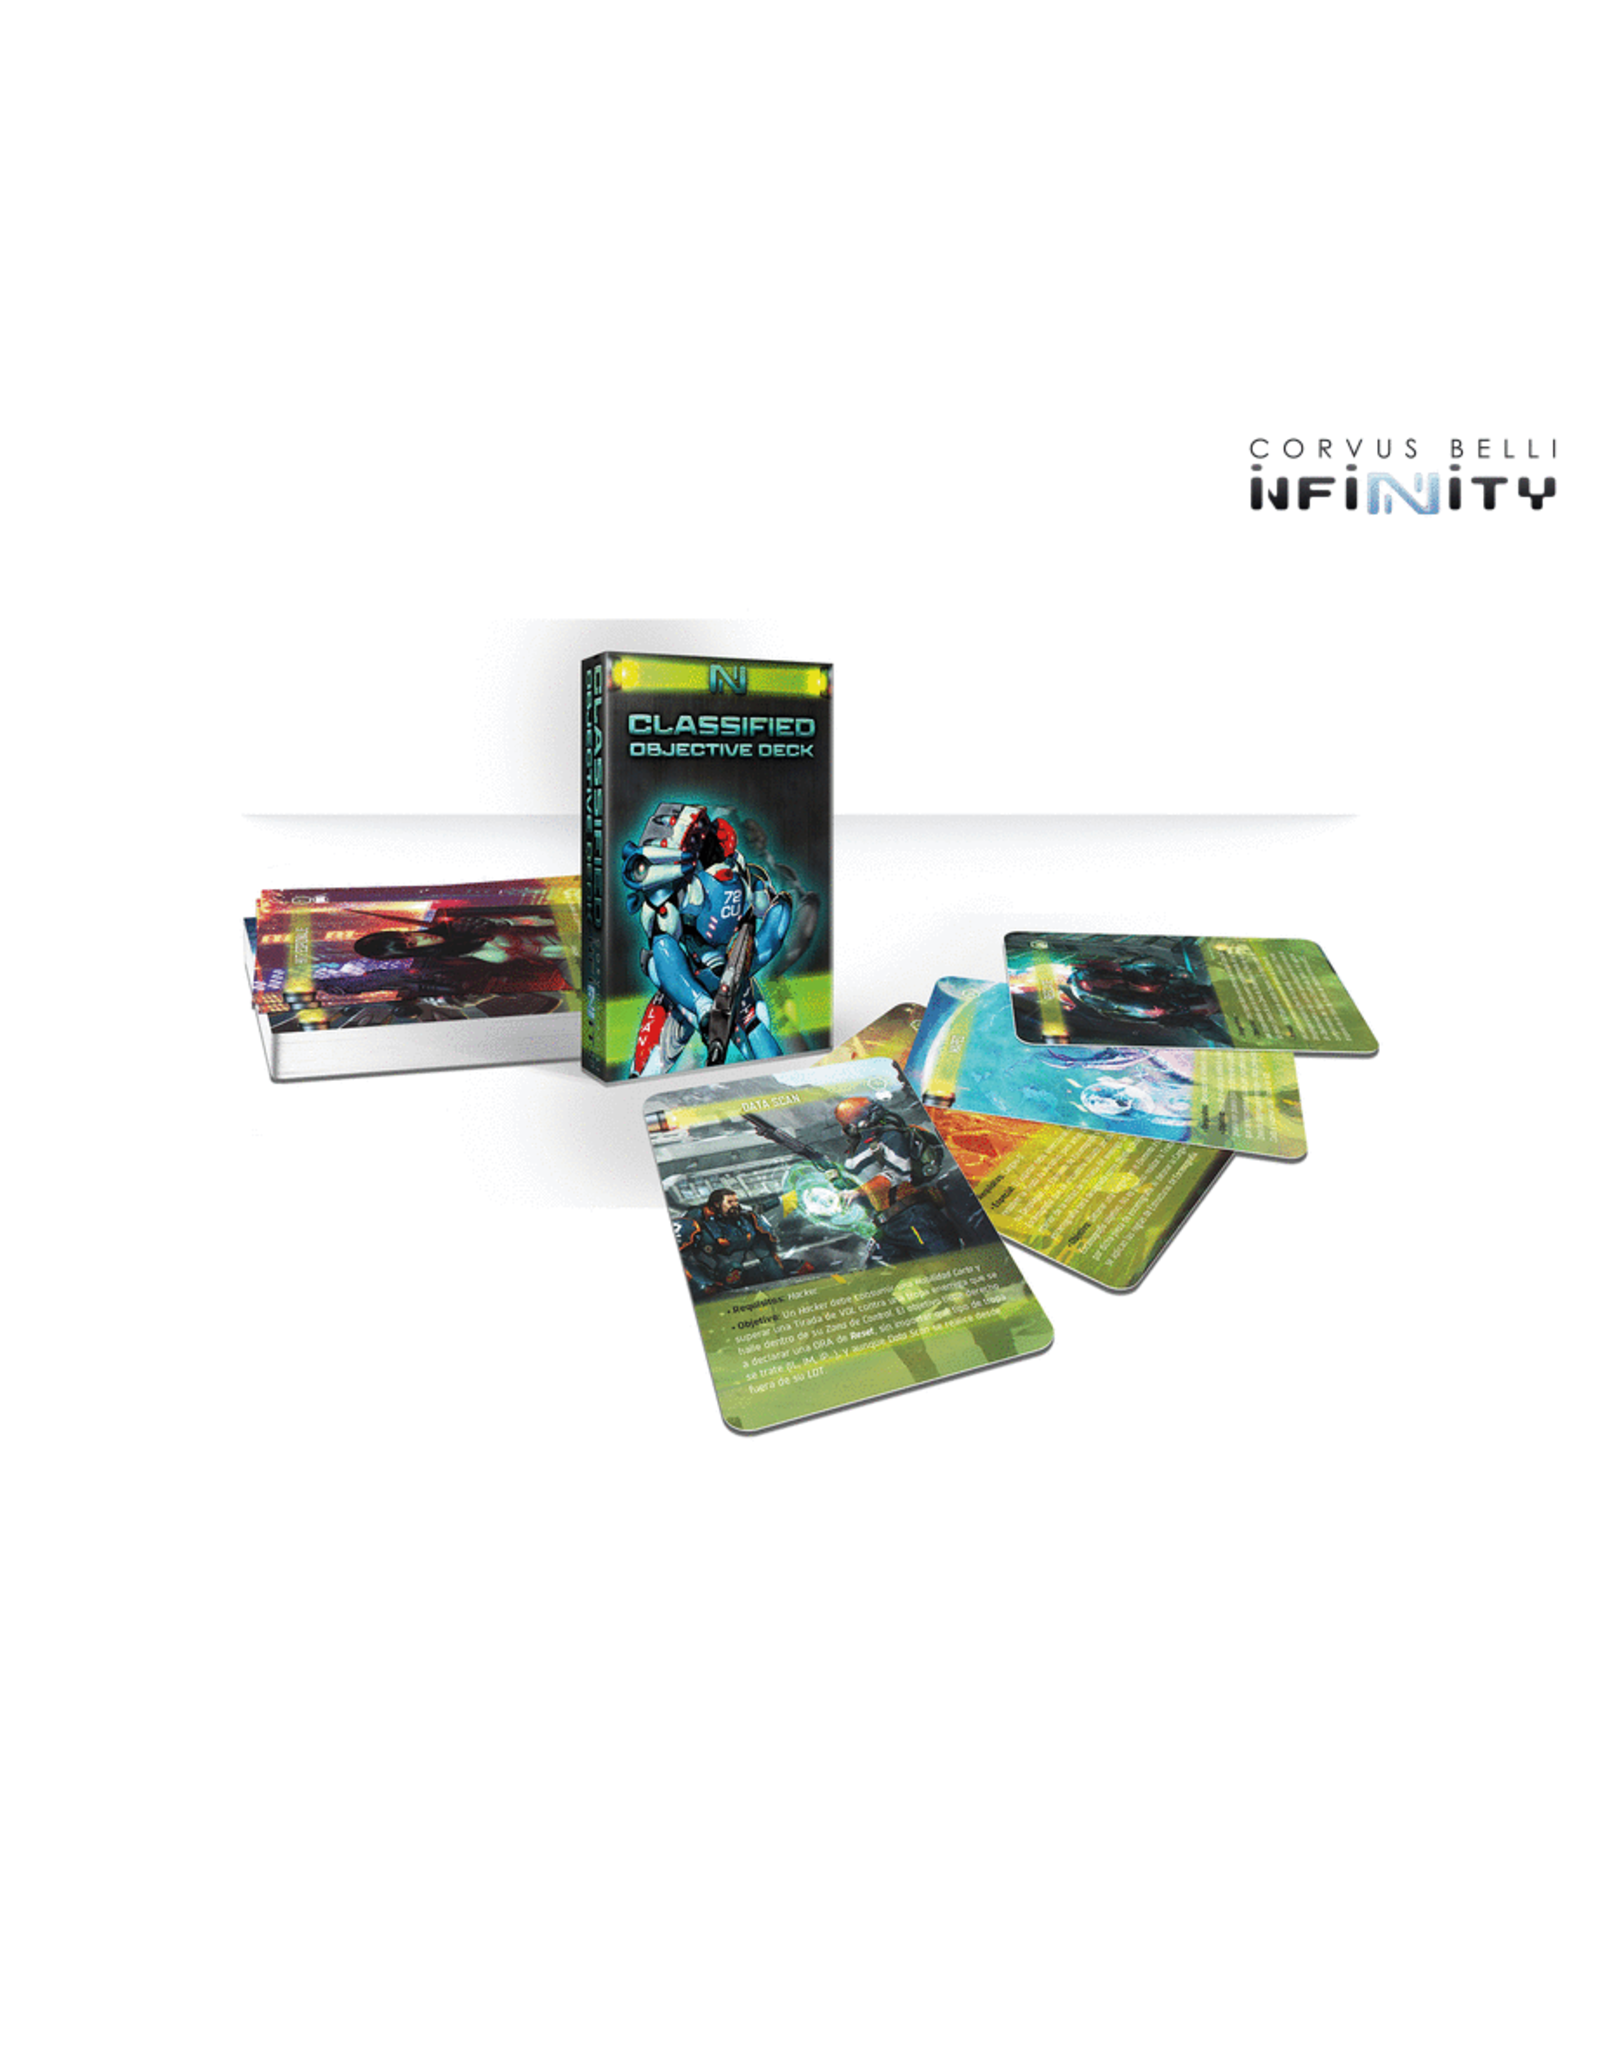 Corvus Belli Infinity: Classified Objective Deck - Season 10